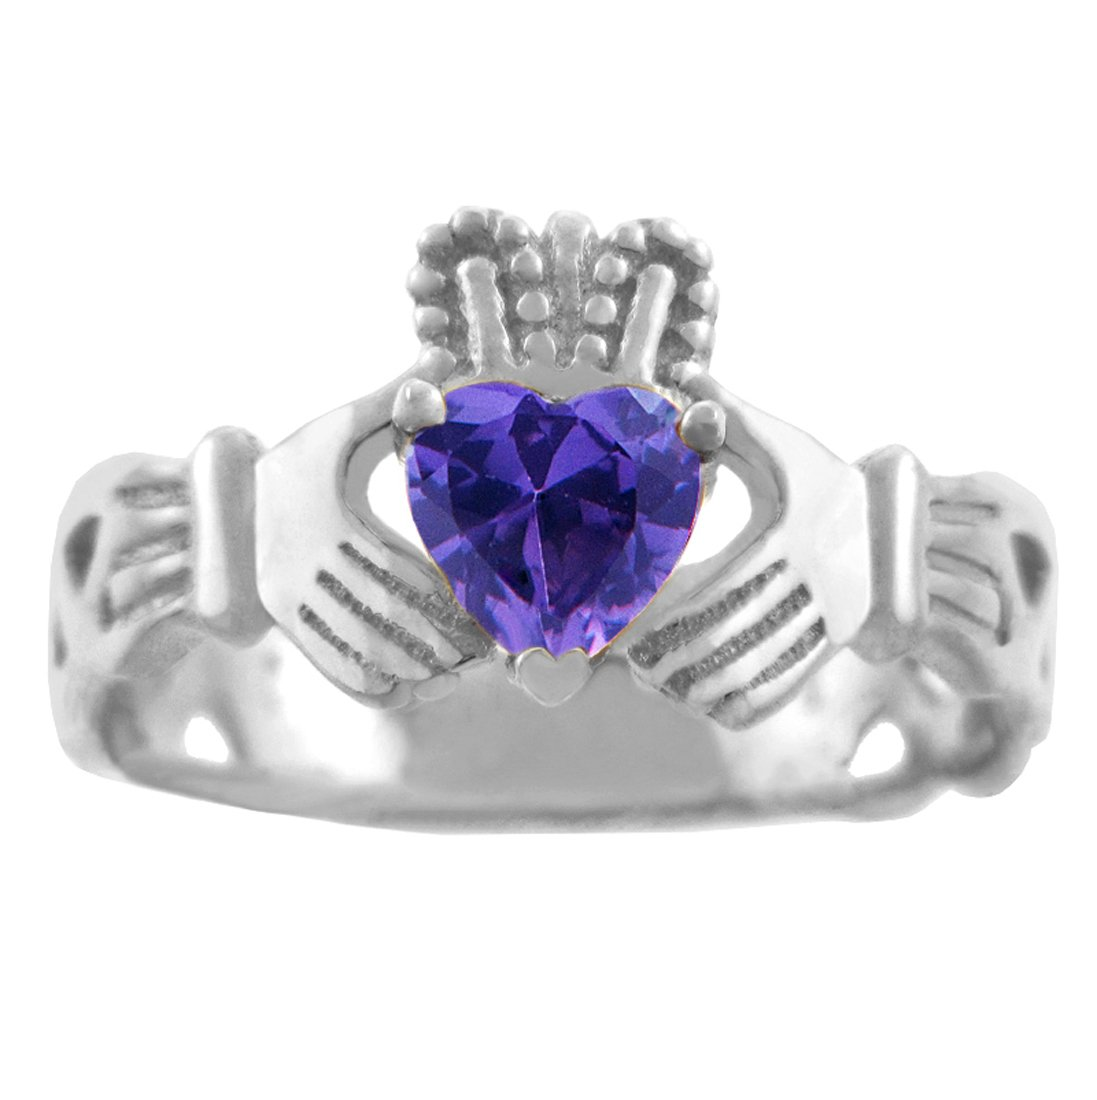 10k White Gold Created Purple CZ Heart February Birthstone Claddagh Ring by Claddagh Rings (Image #2)